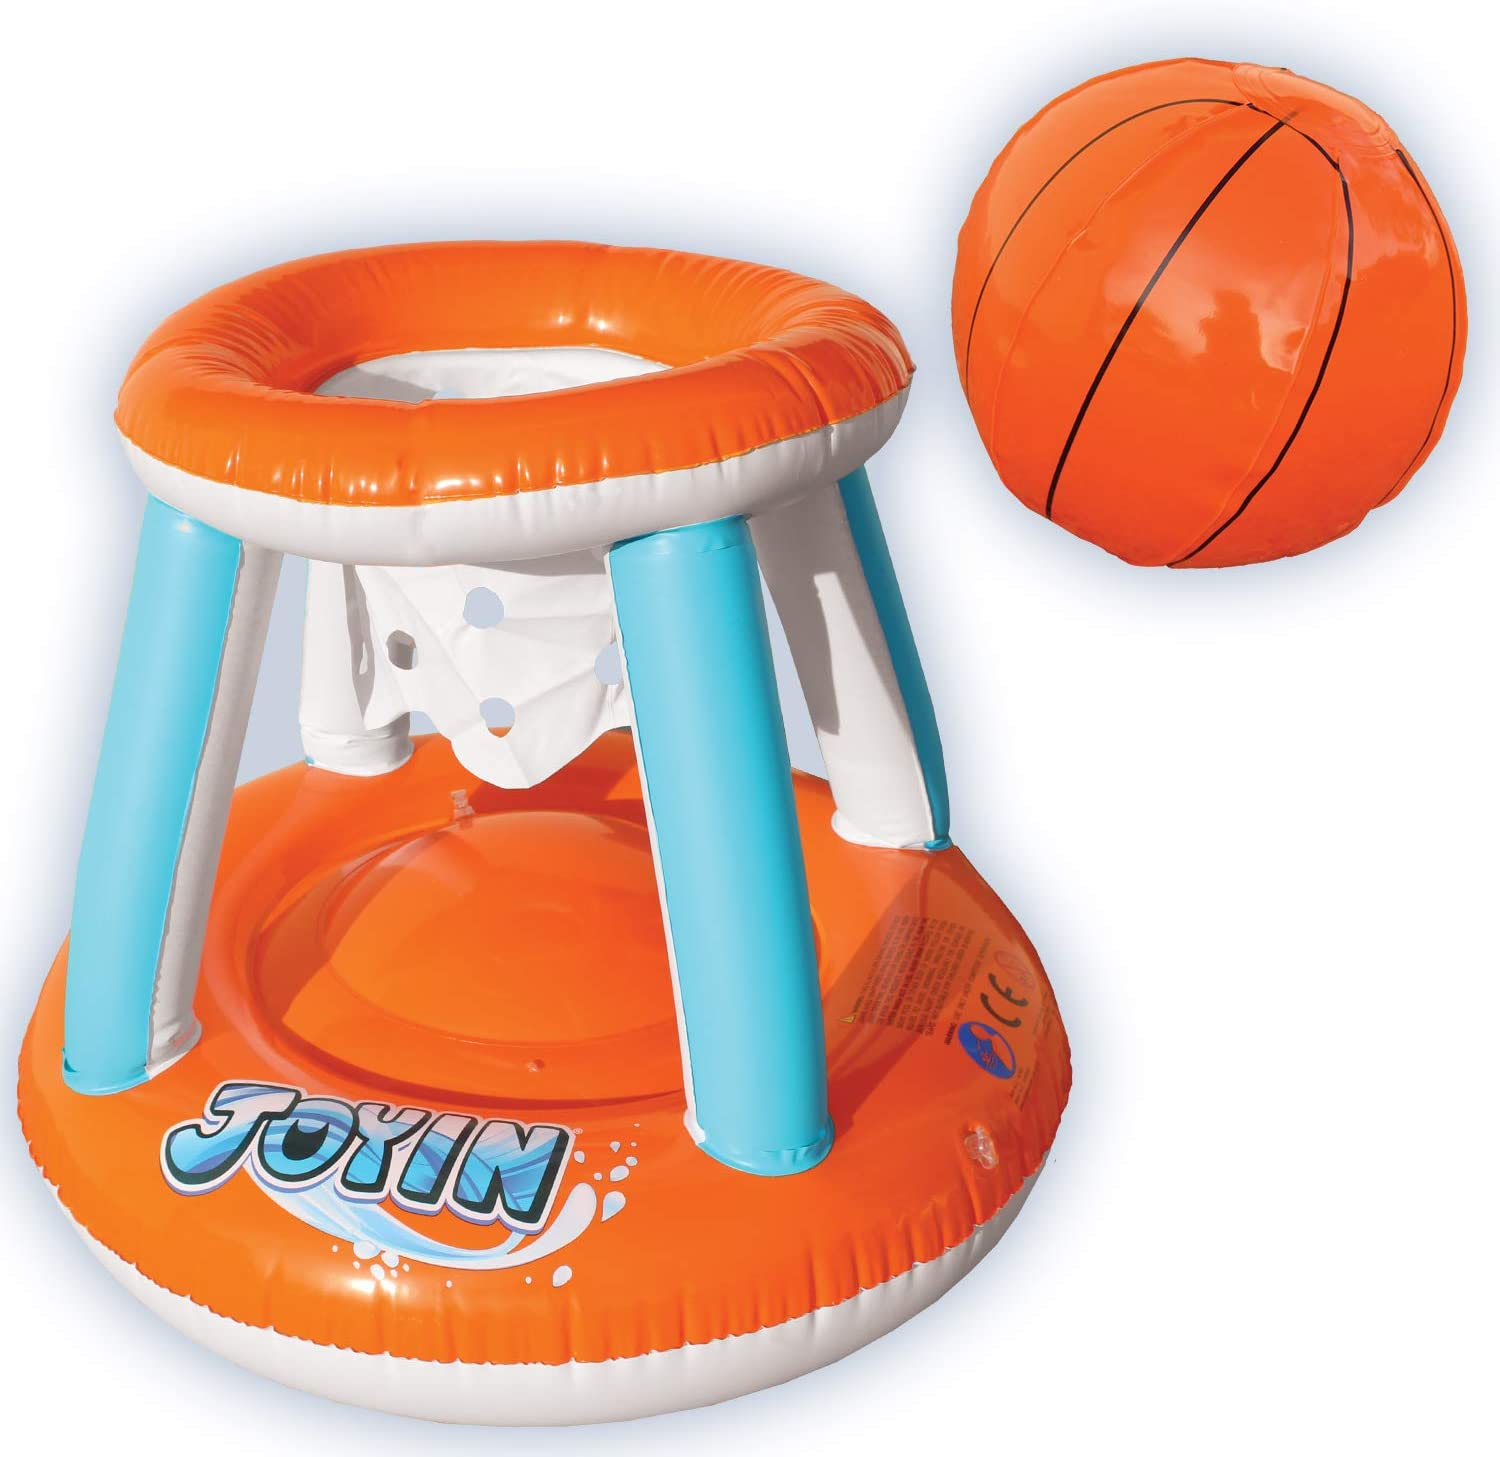 The 7 best pool basketball hoops set in 2020 (Buying Guide) 1